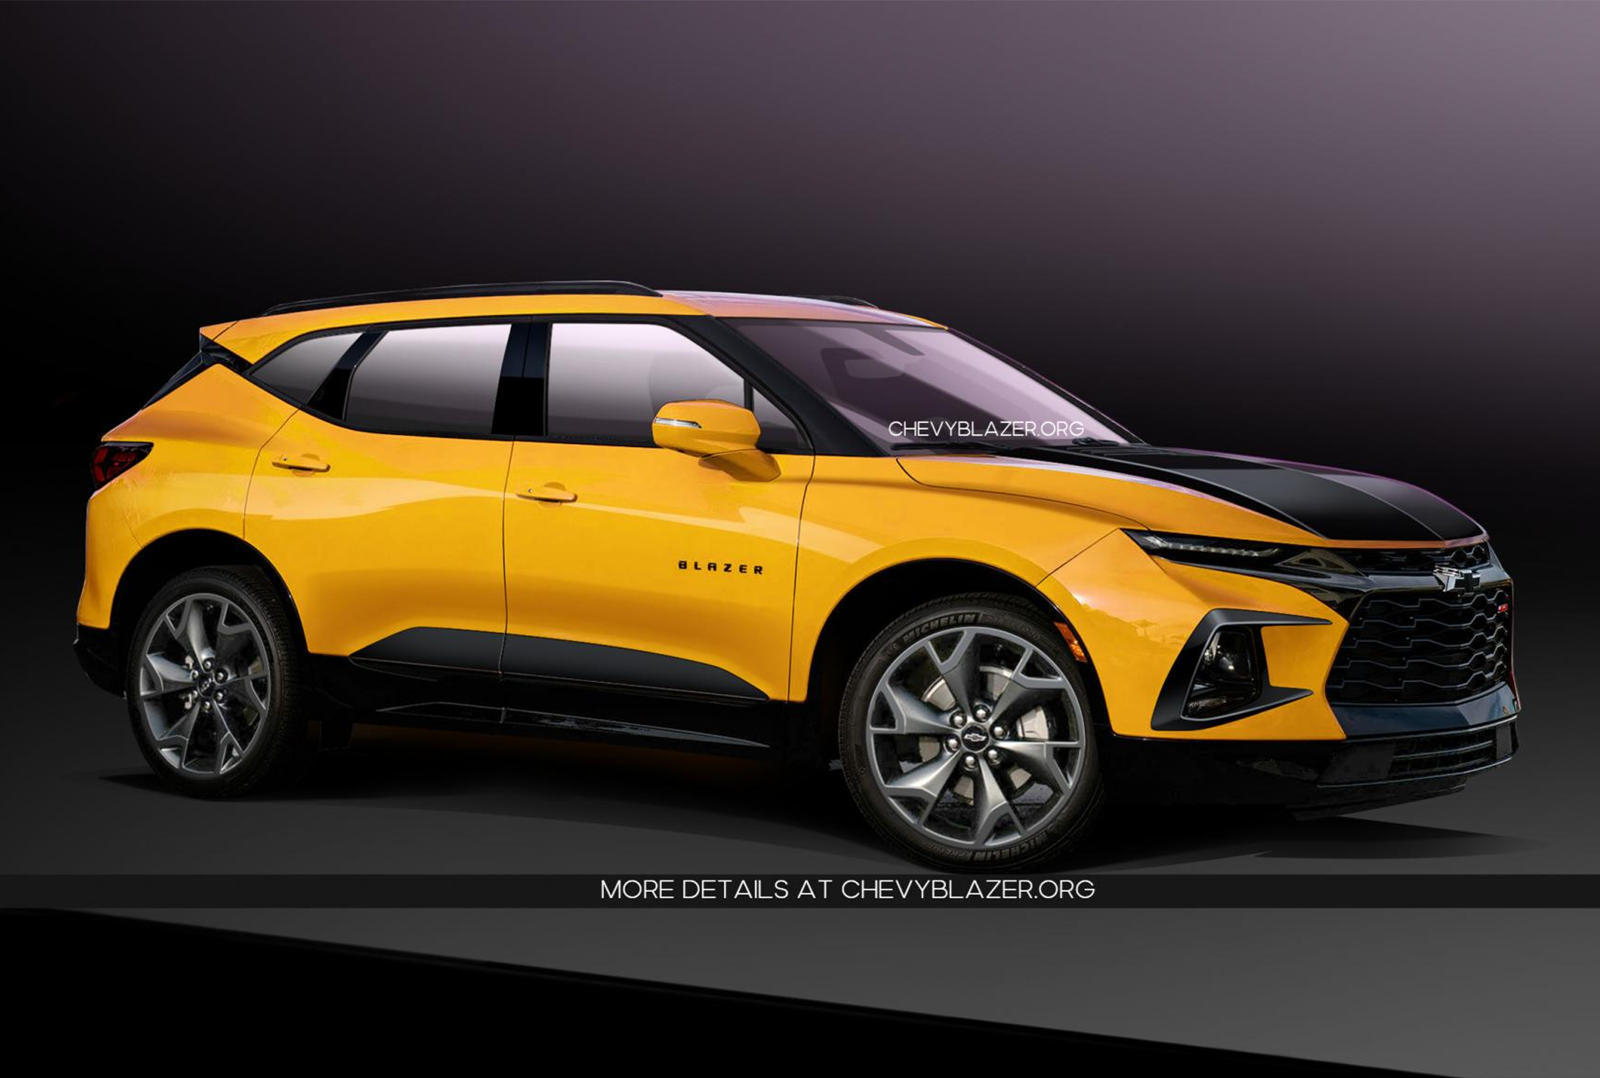 Chevrolet Blazer Ss To Debut At New York With 400 Hp | Carbuzz 2022 Chevy Blazer Ss Performance, Cost, Interior